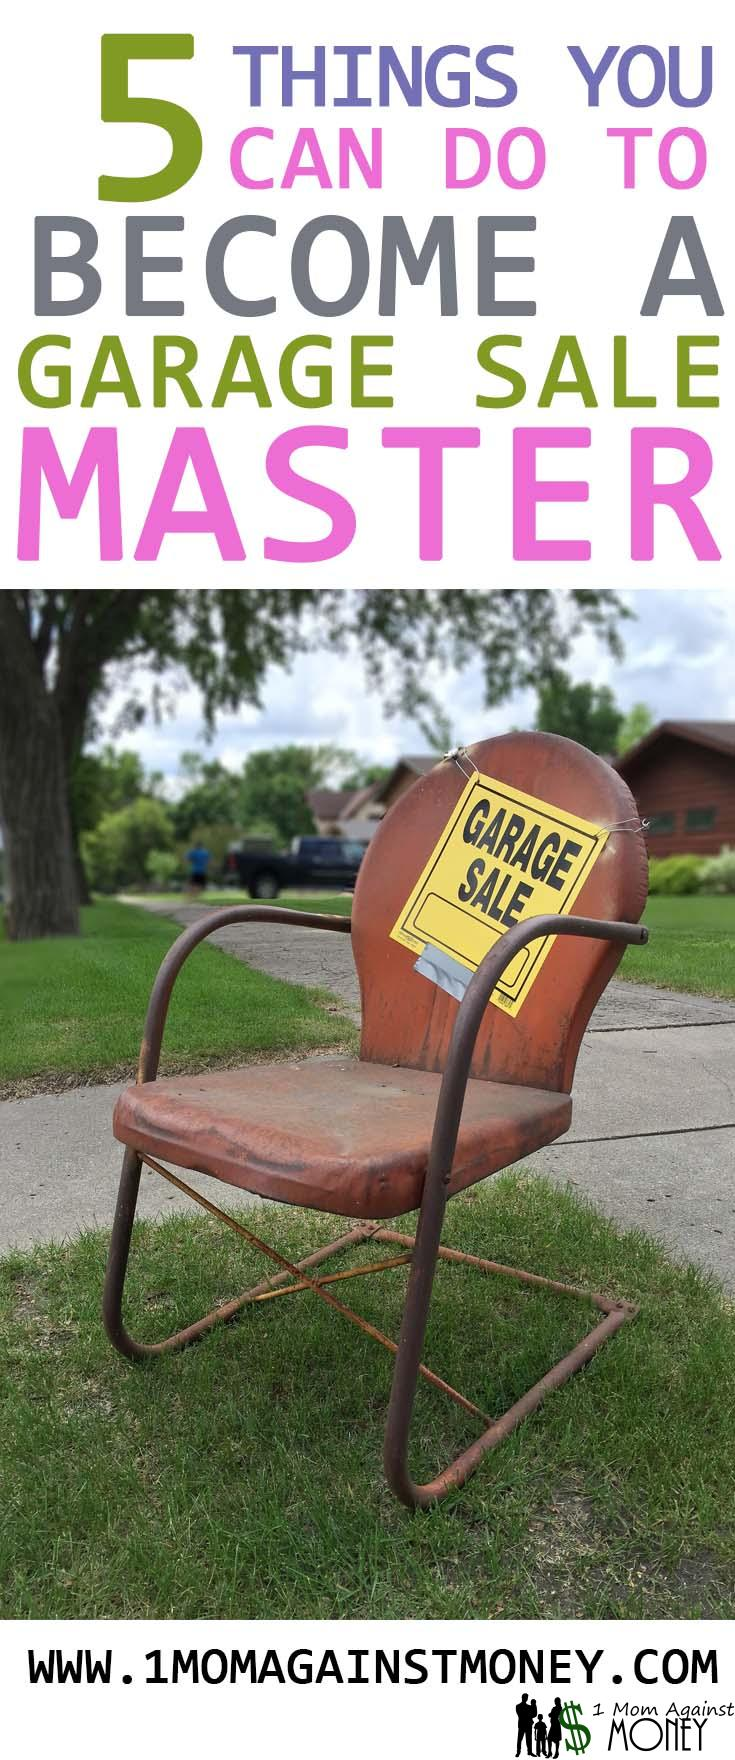 5 Things You Can Do To Be A Garage Sale Master